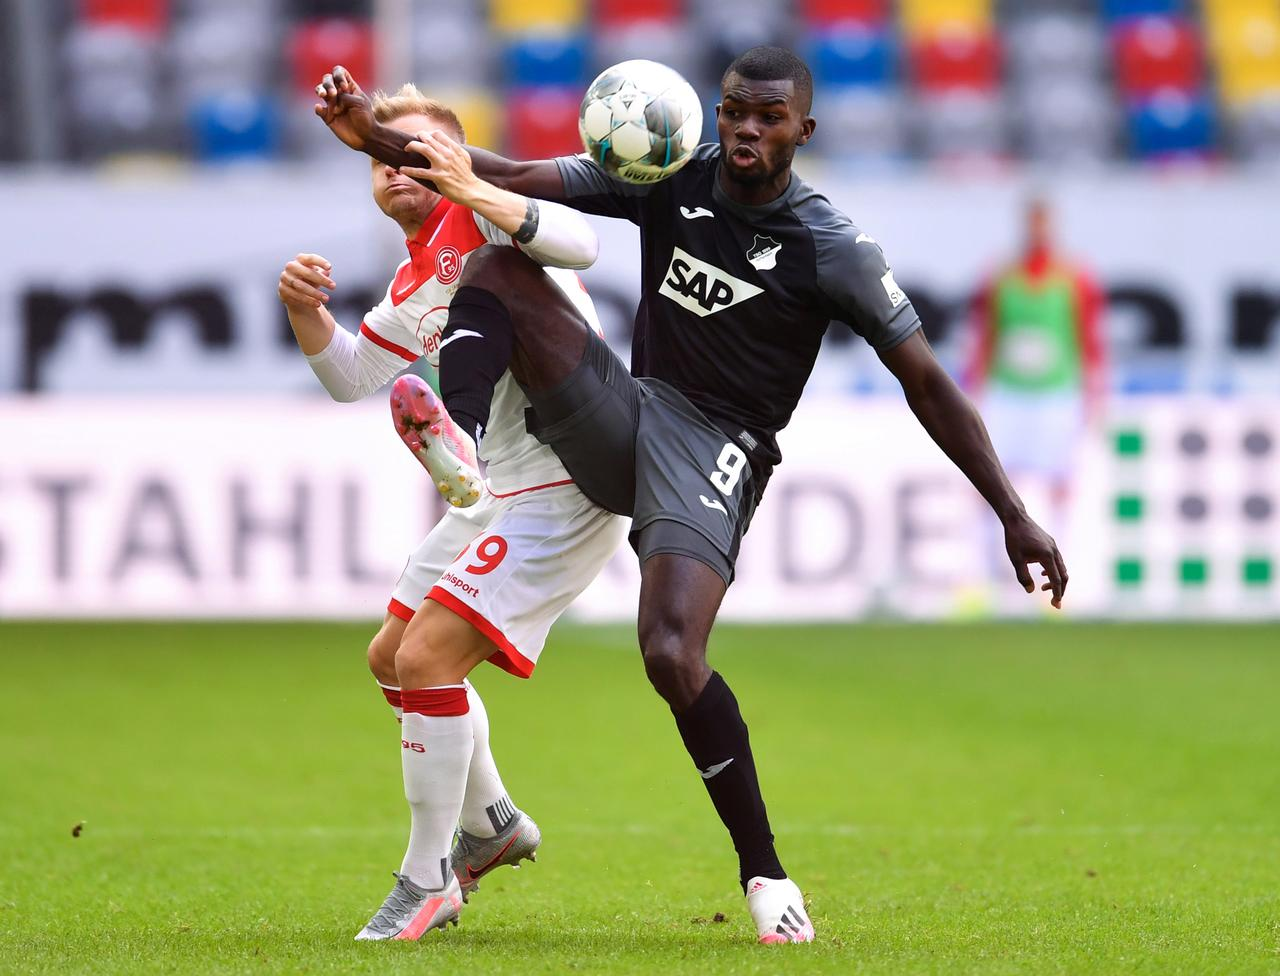 Hennings brace gives Duesseldorf 2-2 draw with 10-man Hoffenheim ...